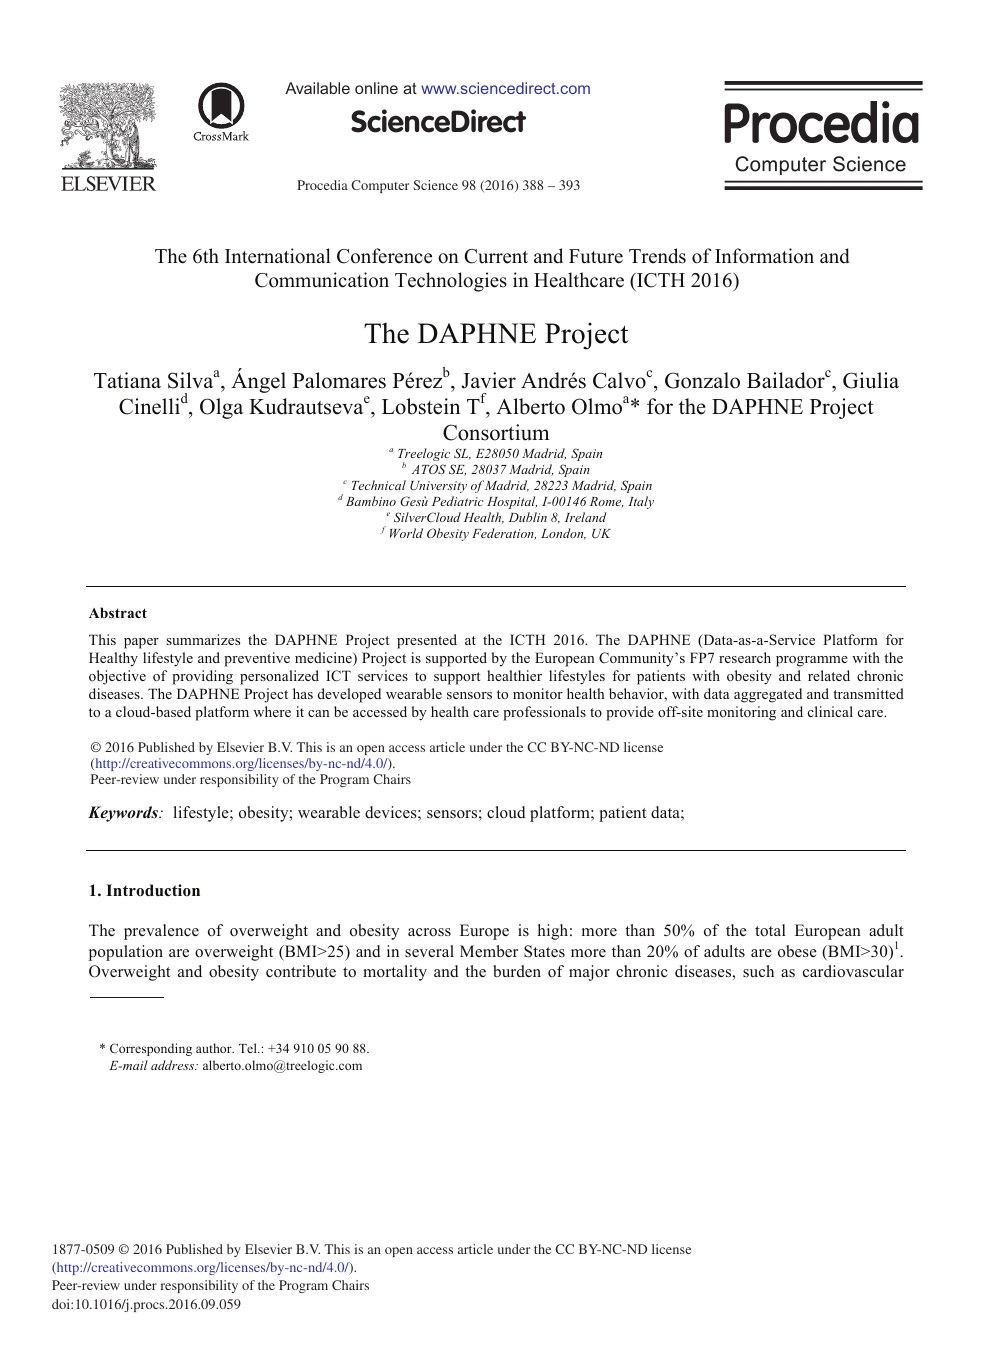 The DAPHNE Project – topic of research paper in Economics